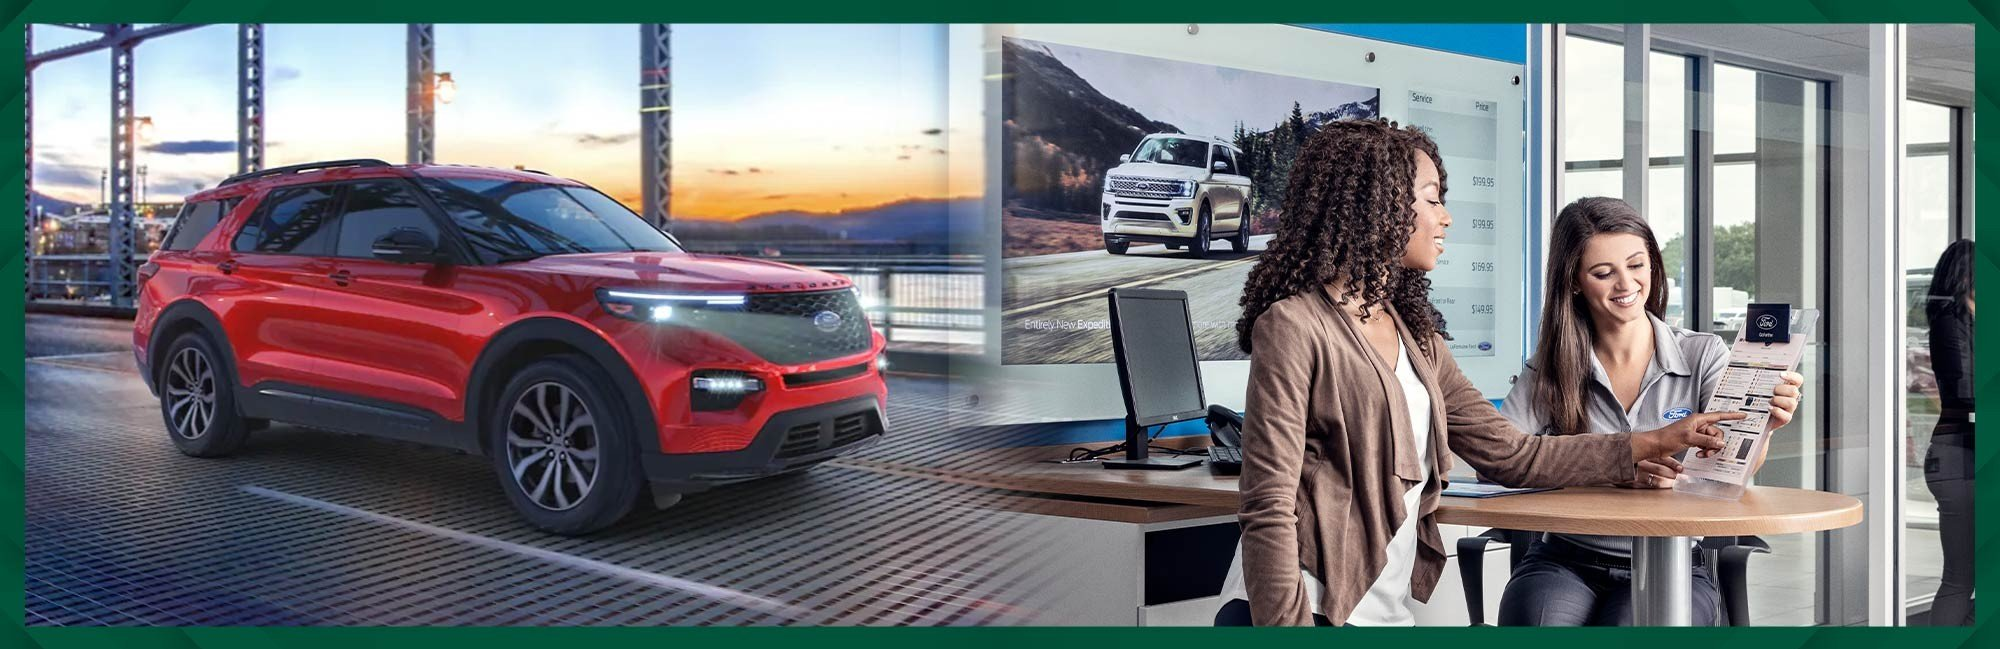 Ford lease offers center Vermont